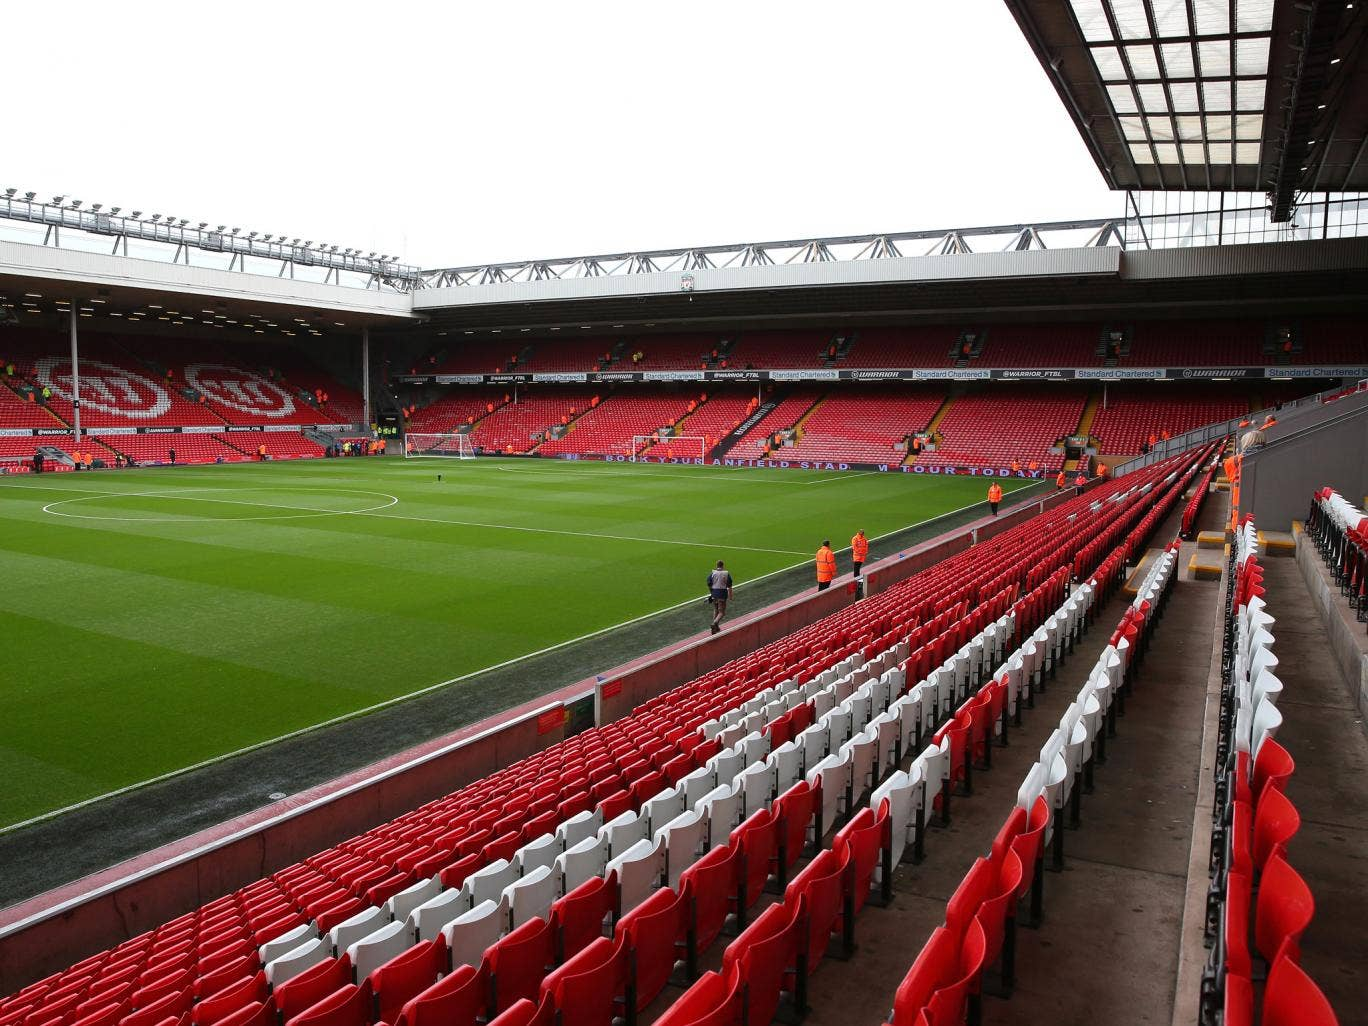 Anfield currently has a capacity of 45,522